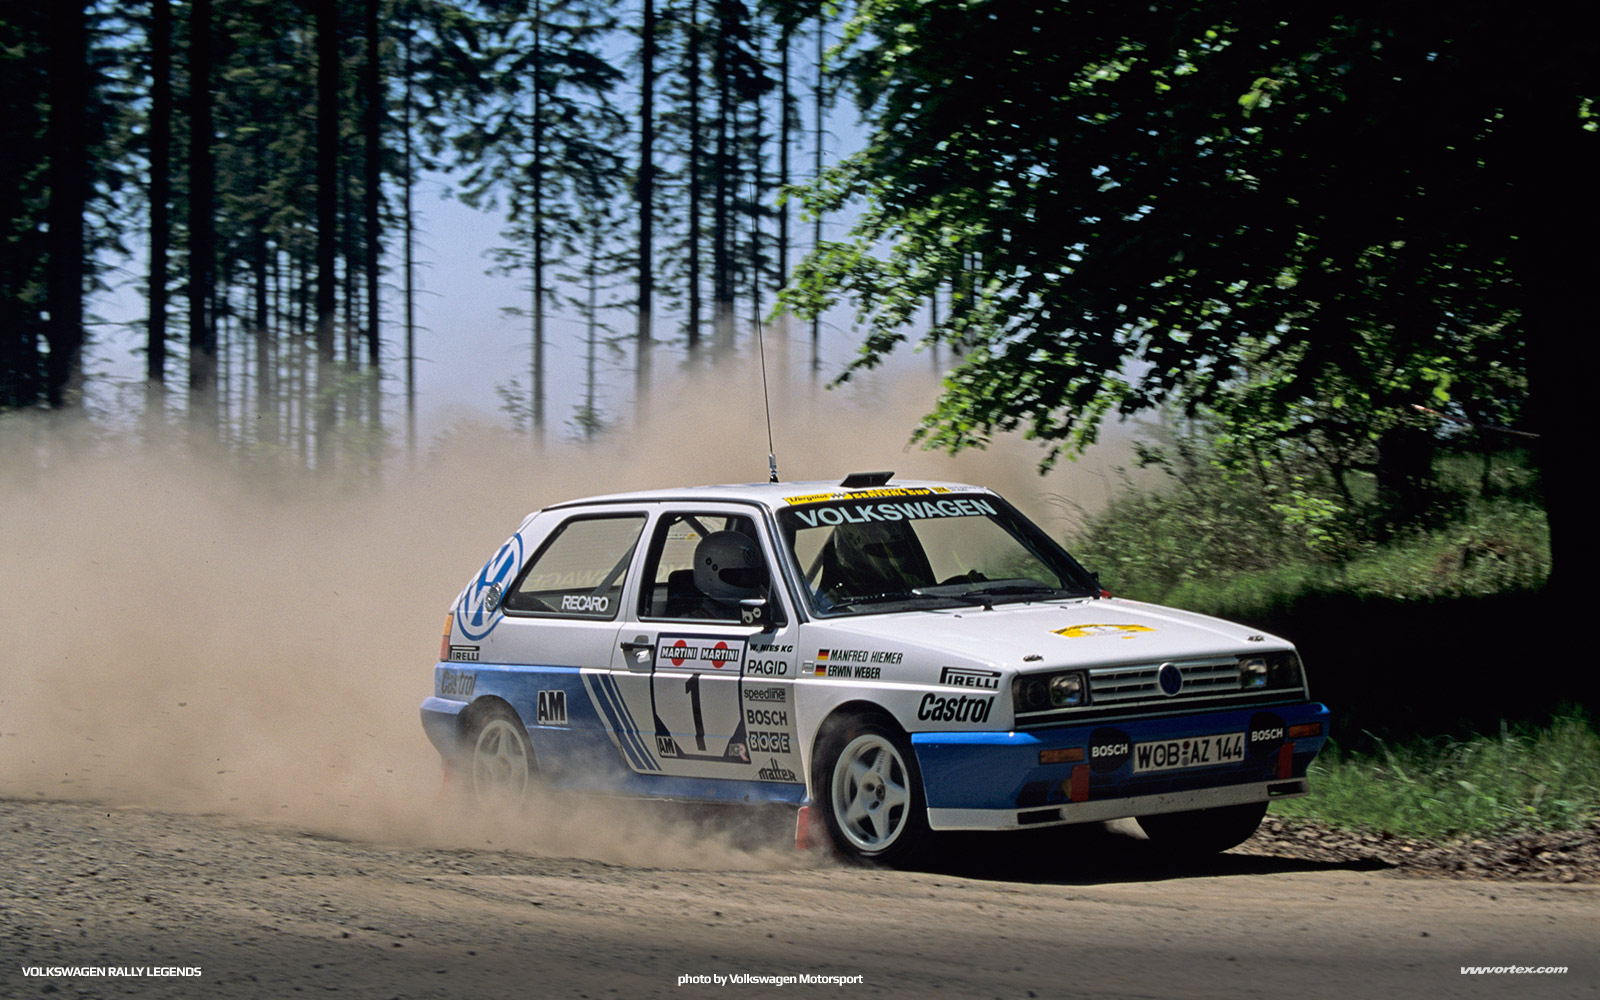 volkswagen-rally-legends-370